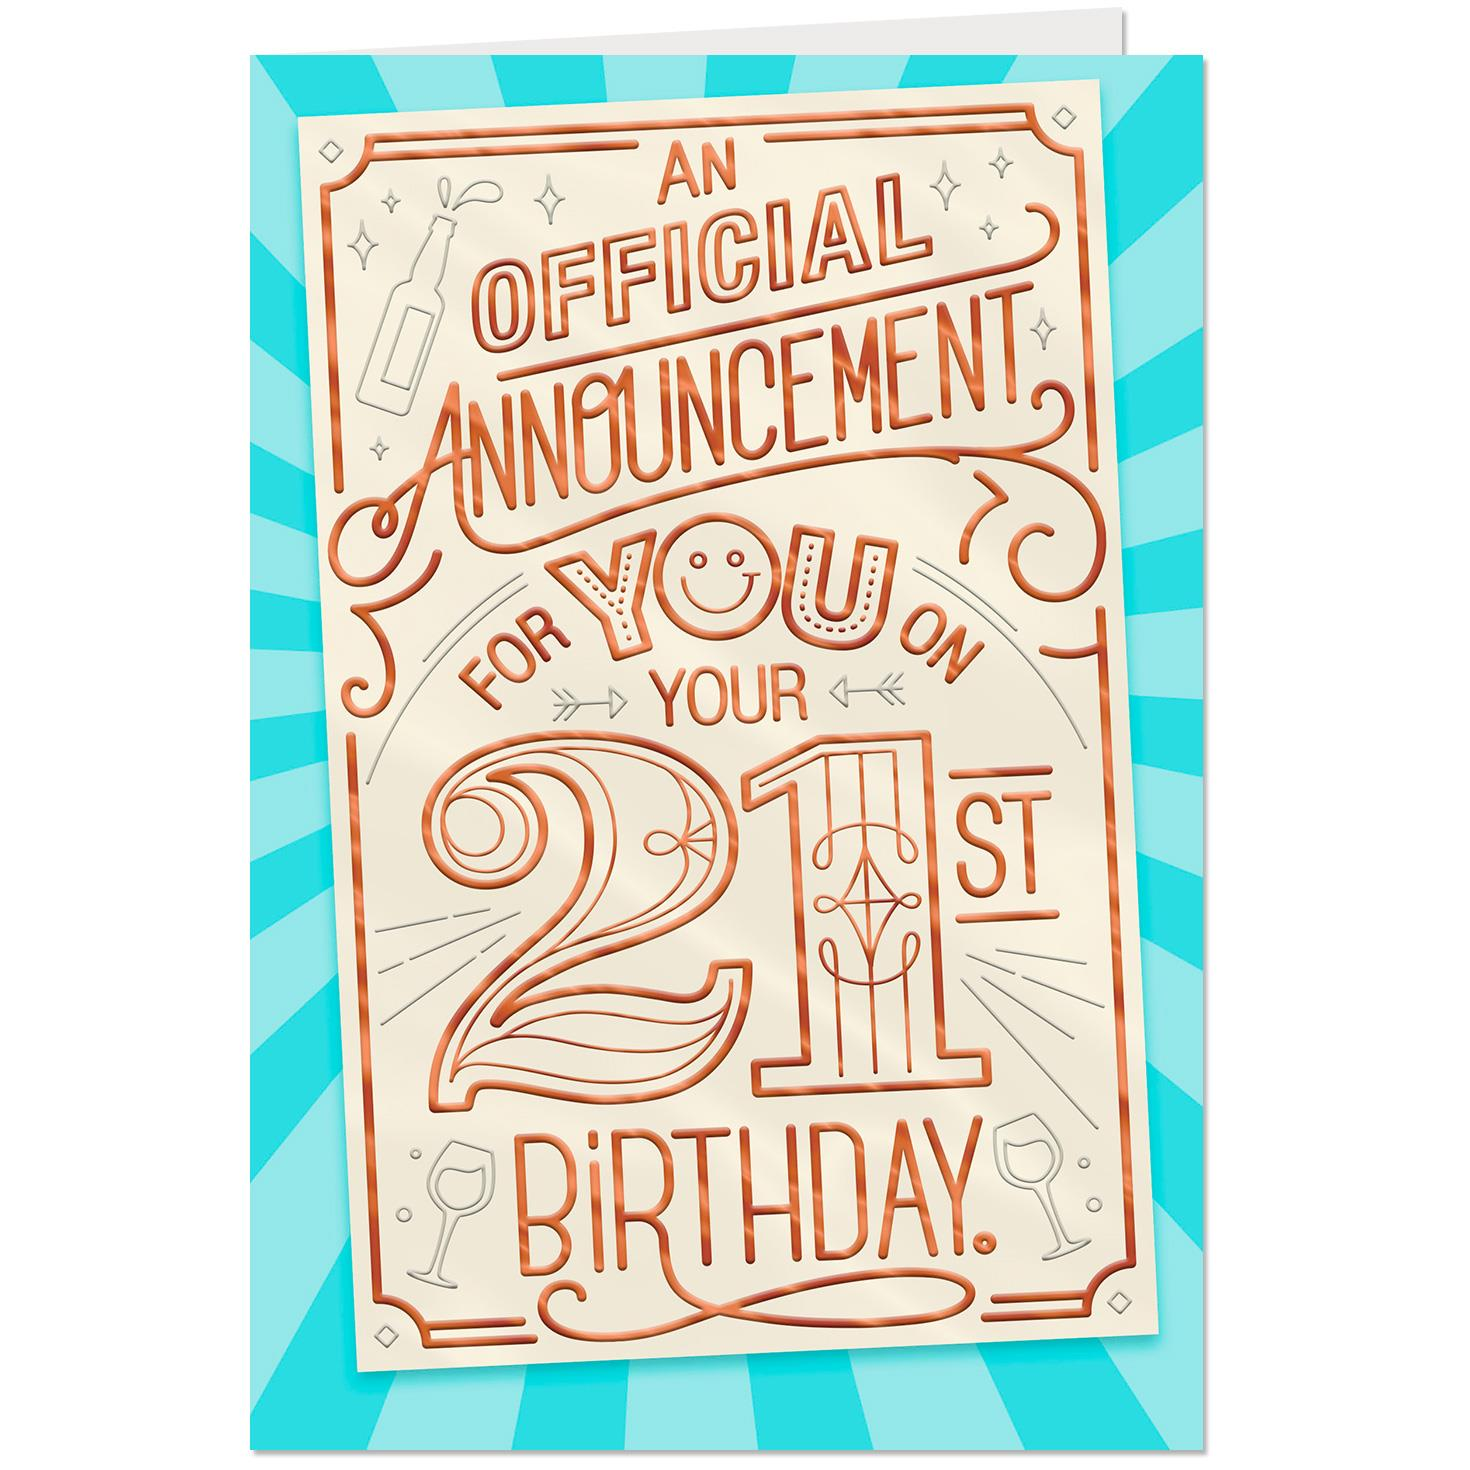 official announcement 21st birthday card  greeting cards